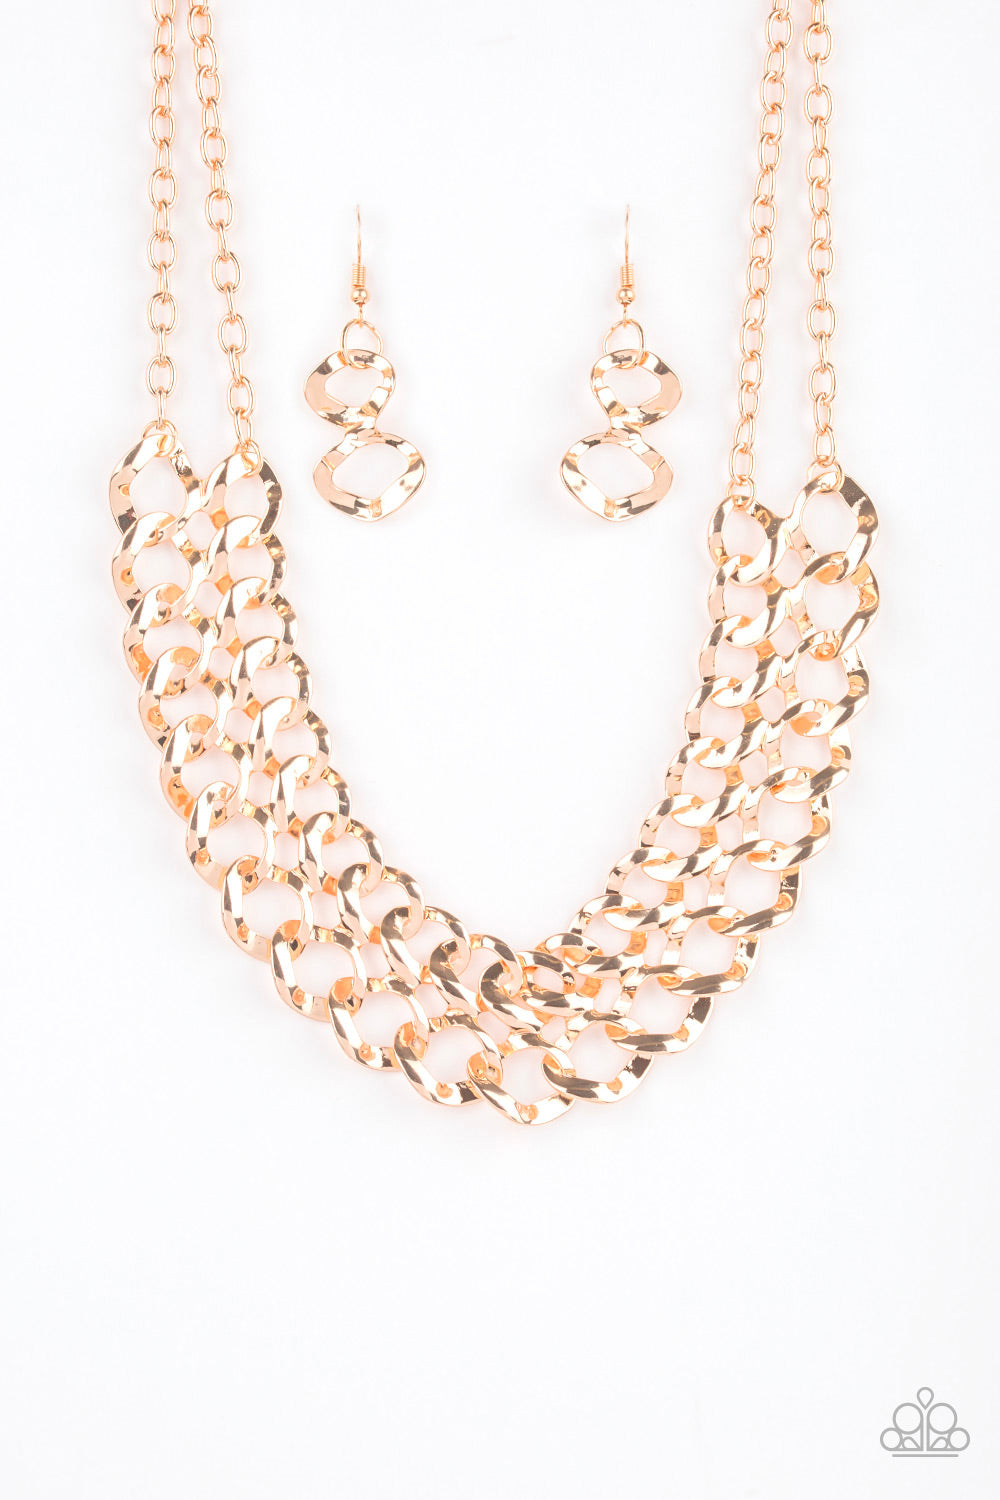 Paparazzi Accessories - Street Meet and Greet - Gold Necklace Set - JMJ Jewelry Collection